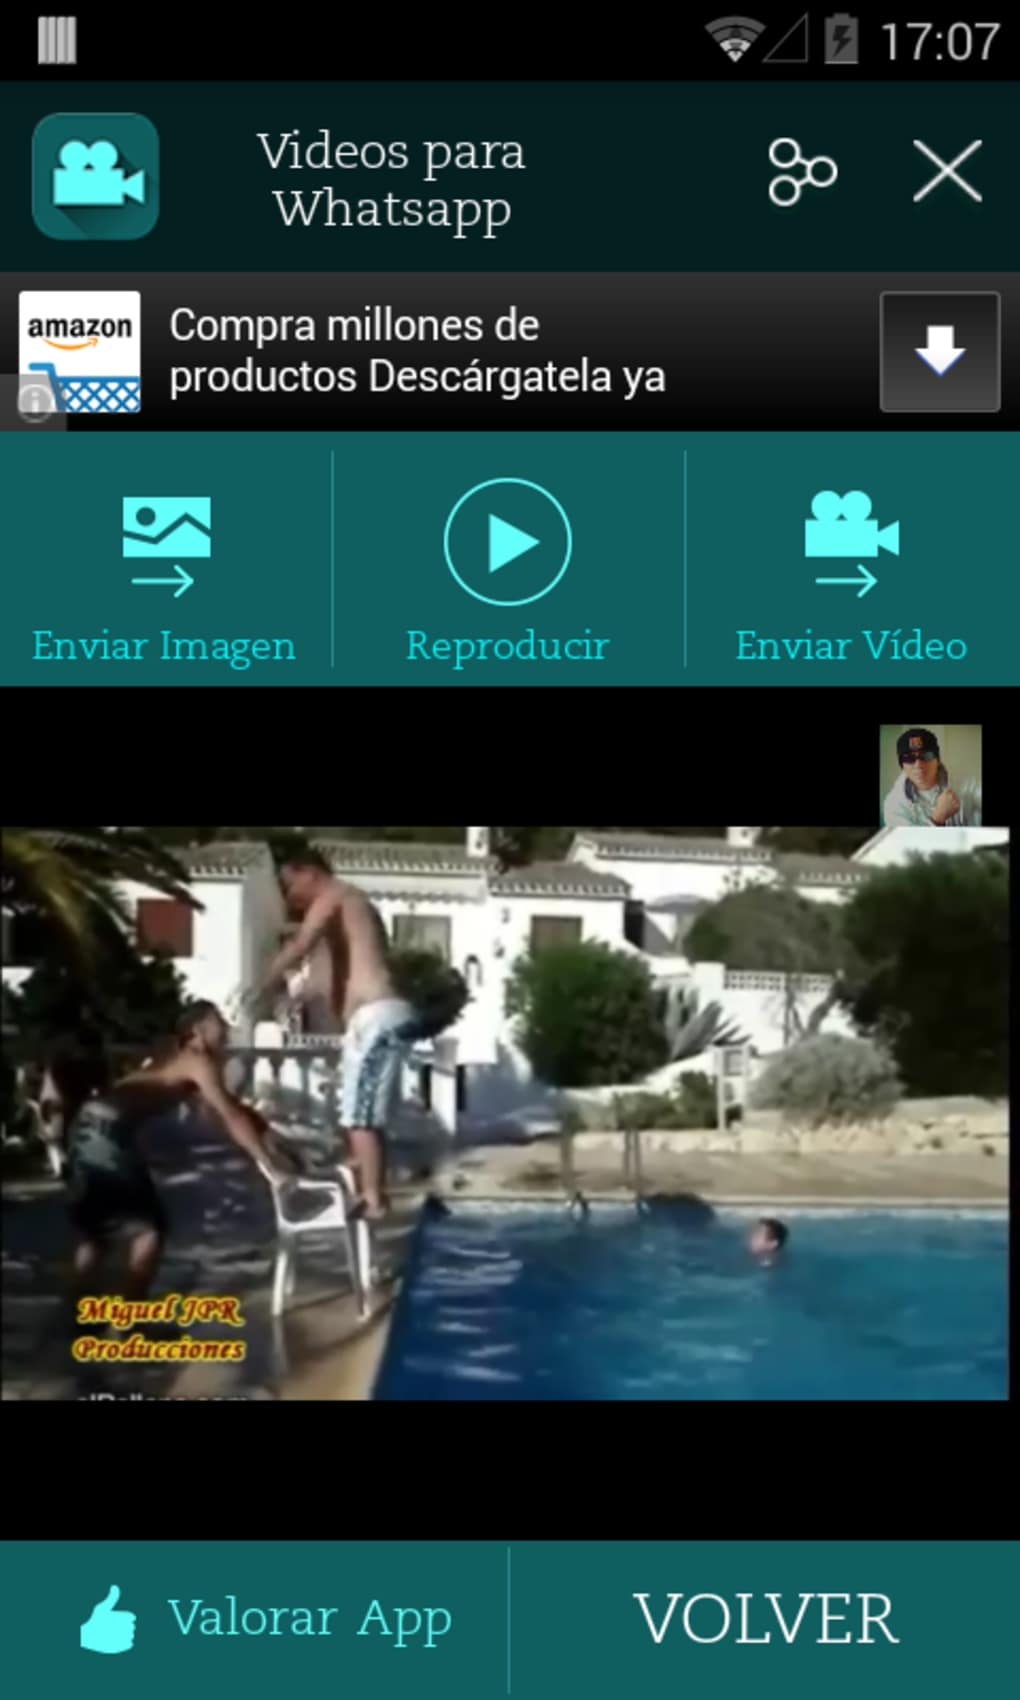 videos chistosos para compartir en wasap